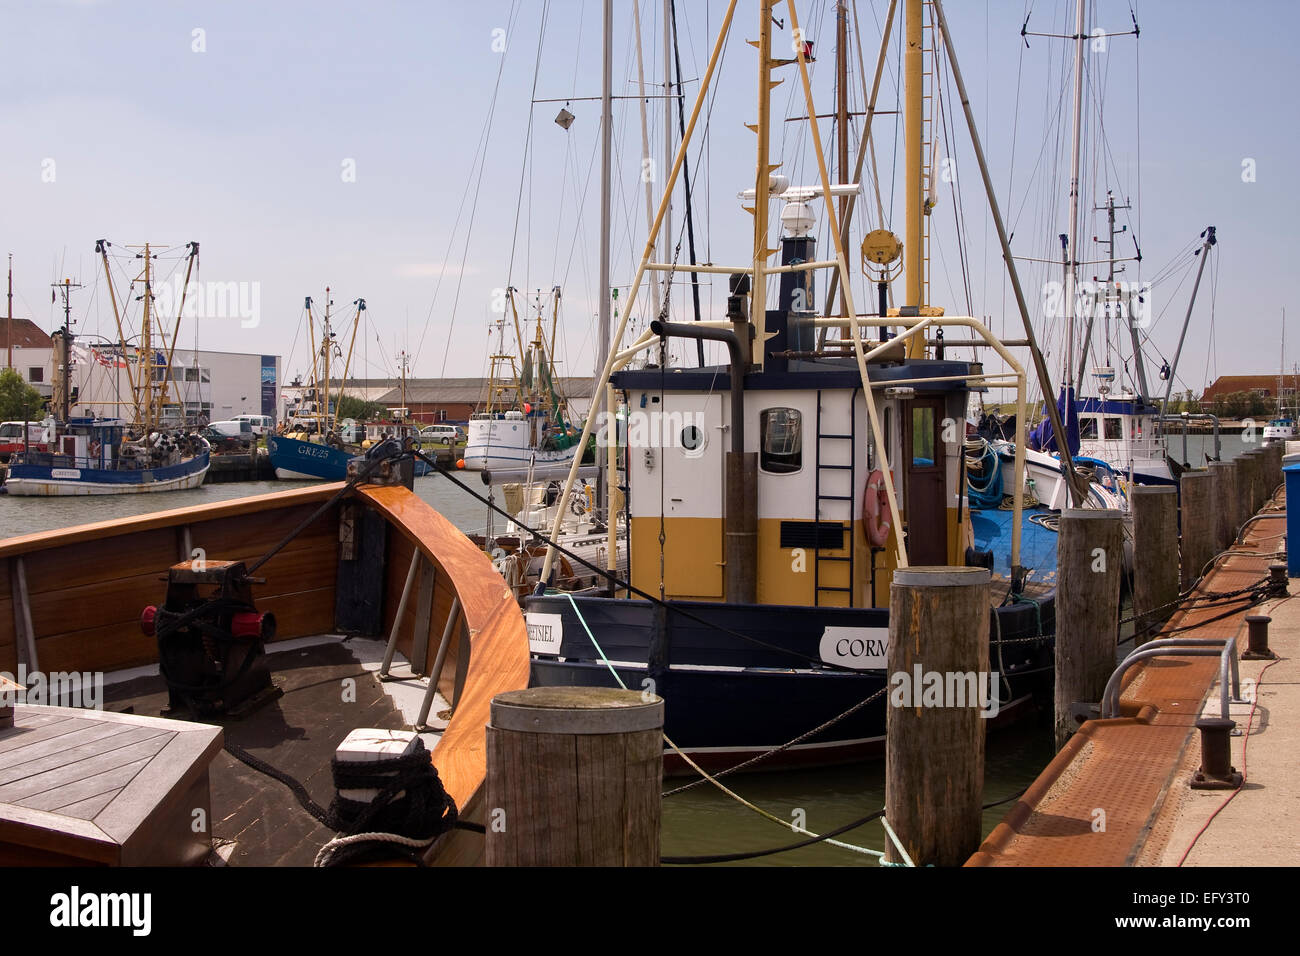 Fishing cutters in the harbor of Buesum, Dithmarschen district, Schleswig-Holstein, North Sea, Germany, Europe Stock Photo